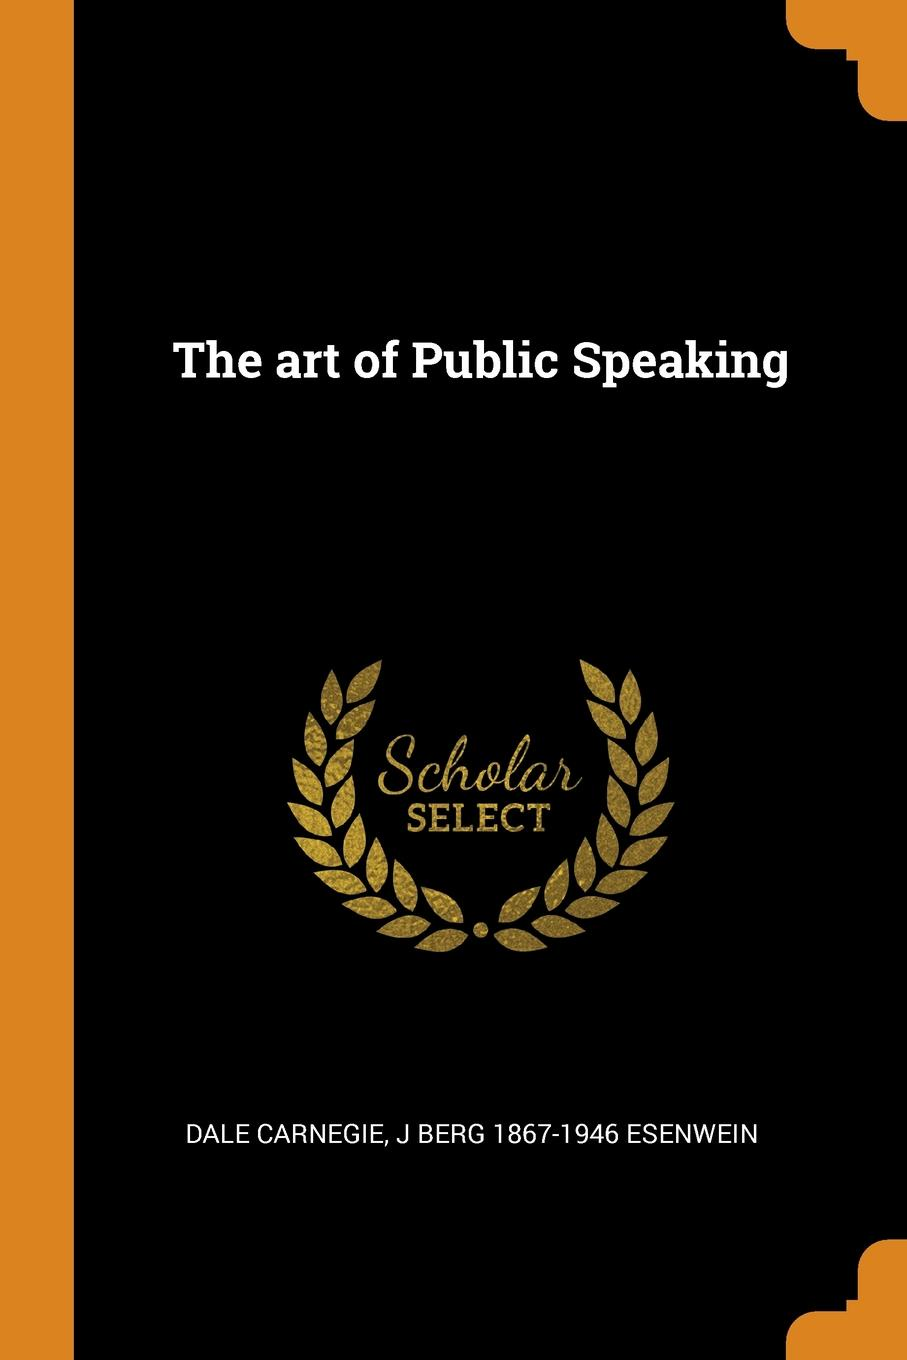 лучшая цена Dale Carnegie, J Berg 1867-1946 Esenwein The art of Public Speaking